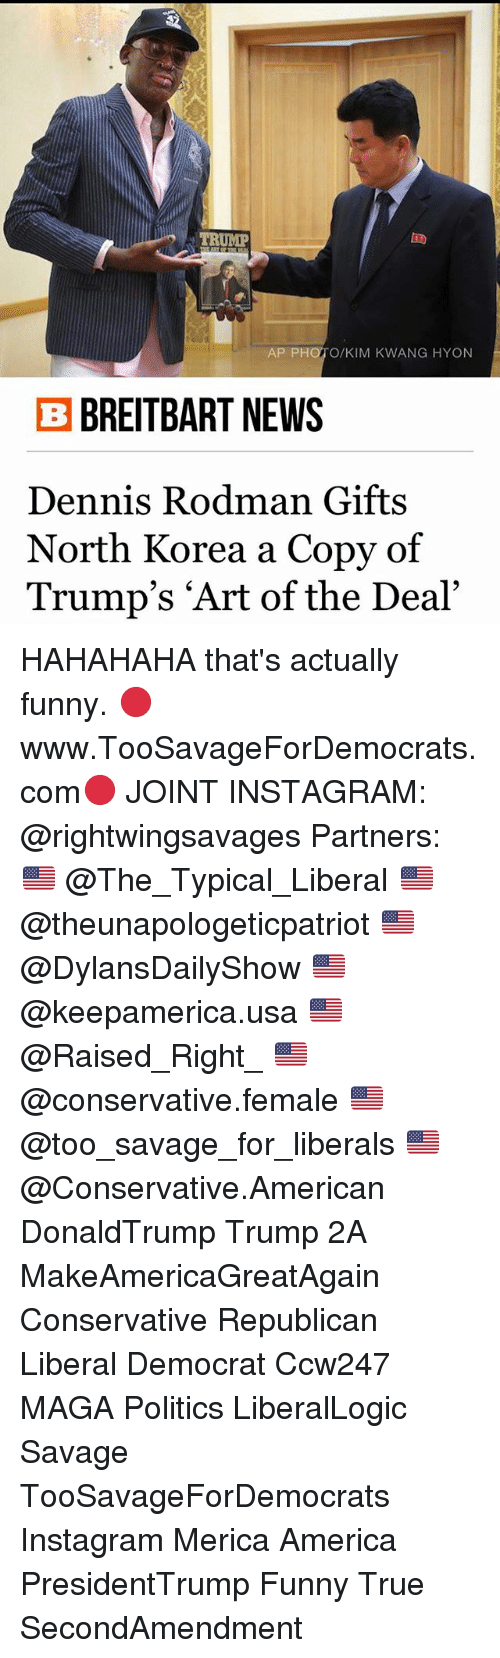 "America, Dennis Rodman, and Funny: TRUMP  AP PH  KIM KWANG HYON  B BREITBART NEWS  Dennis Rodman Gifts  North Korea a Copy of  Trump's ""Art of the Deal"" HAHAHAHA that's actually funny. 🔴www.TooSavageForDemocrats.com🔴 JOINT INSTAGRAM: @rightwingsavages Partners: 🇺🇸 @The_Typical_Liberal 🇺🇸 @theunapologeticpatriot 🇺🇸 @DylansDailyShow 🇺🇸 @keepamerica.usa 🇺🇸@Raised_Right_ 🇺🇸@conservative.female 🇺🇸 @too_savage_for_liberals 🇺🇸 @Conservative.American DonaldTrump Trump 2A MakeAmericaGreatAgain Conservative Republican Liberal Democrat Ccw247 MAGA Politics LiberalLogic Savage TooSavageForDemocrats Instagram Merica America PresidentTrump Funny True SecondAmendment"